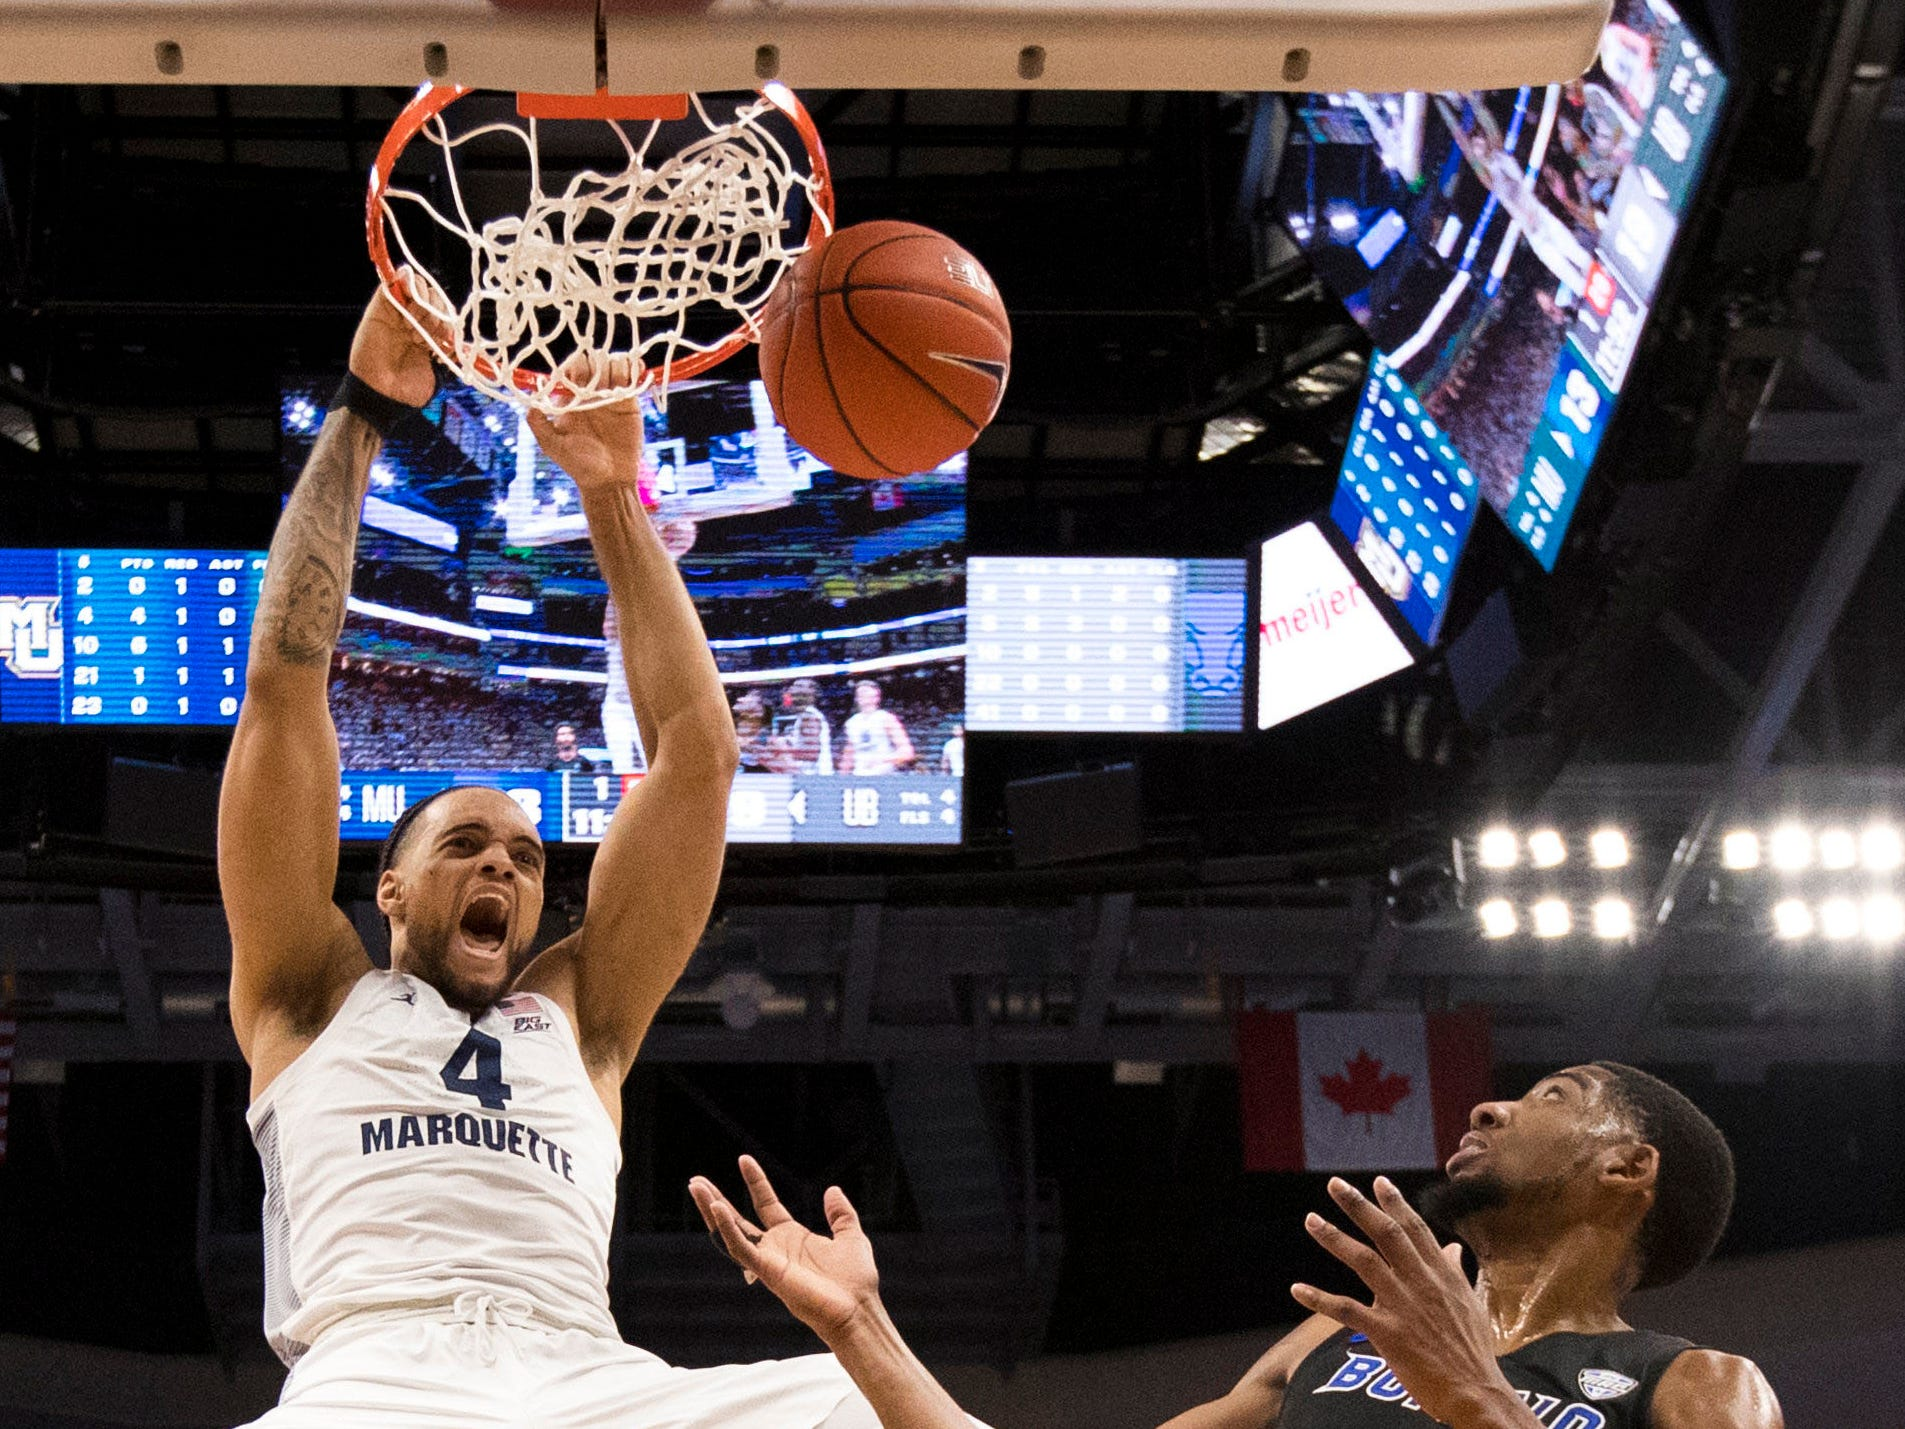 Marquette forward Theo John throws down an emphatic dunk against Buffalo during the first half Friday night.